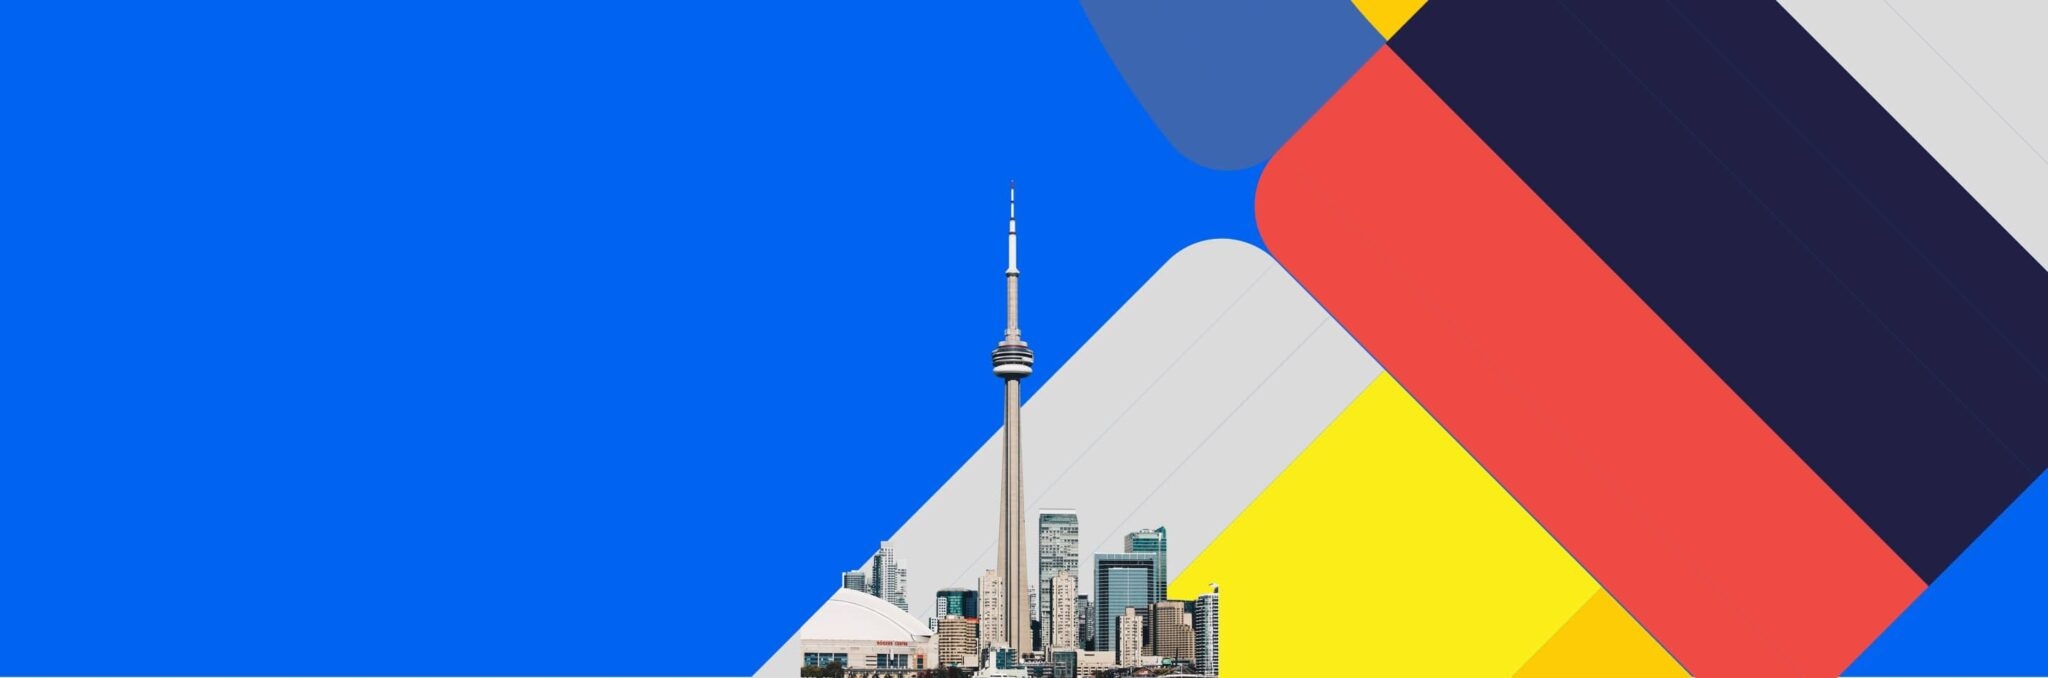 Toronto Mortgage Rates - Compare Today's Best Rates - nesto